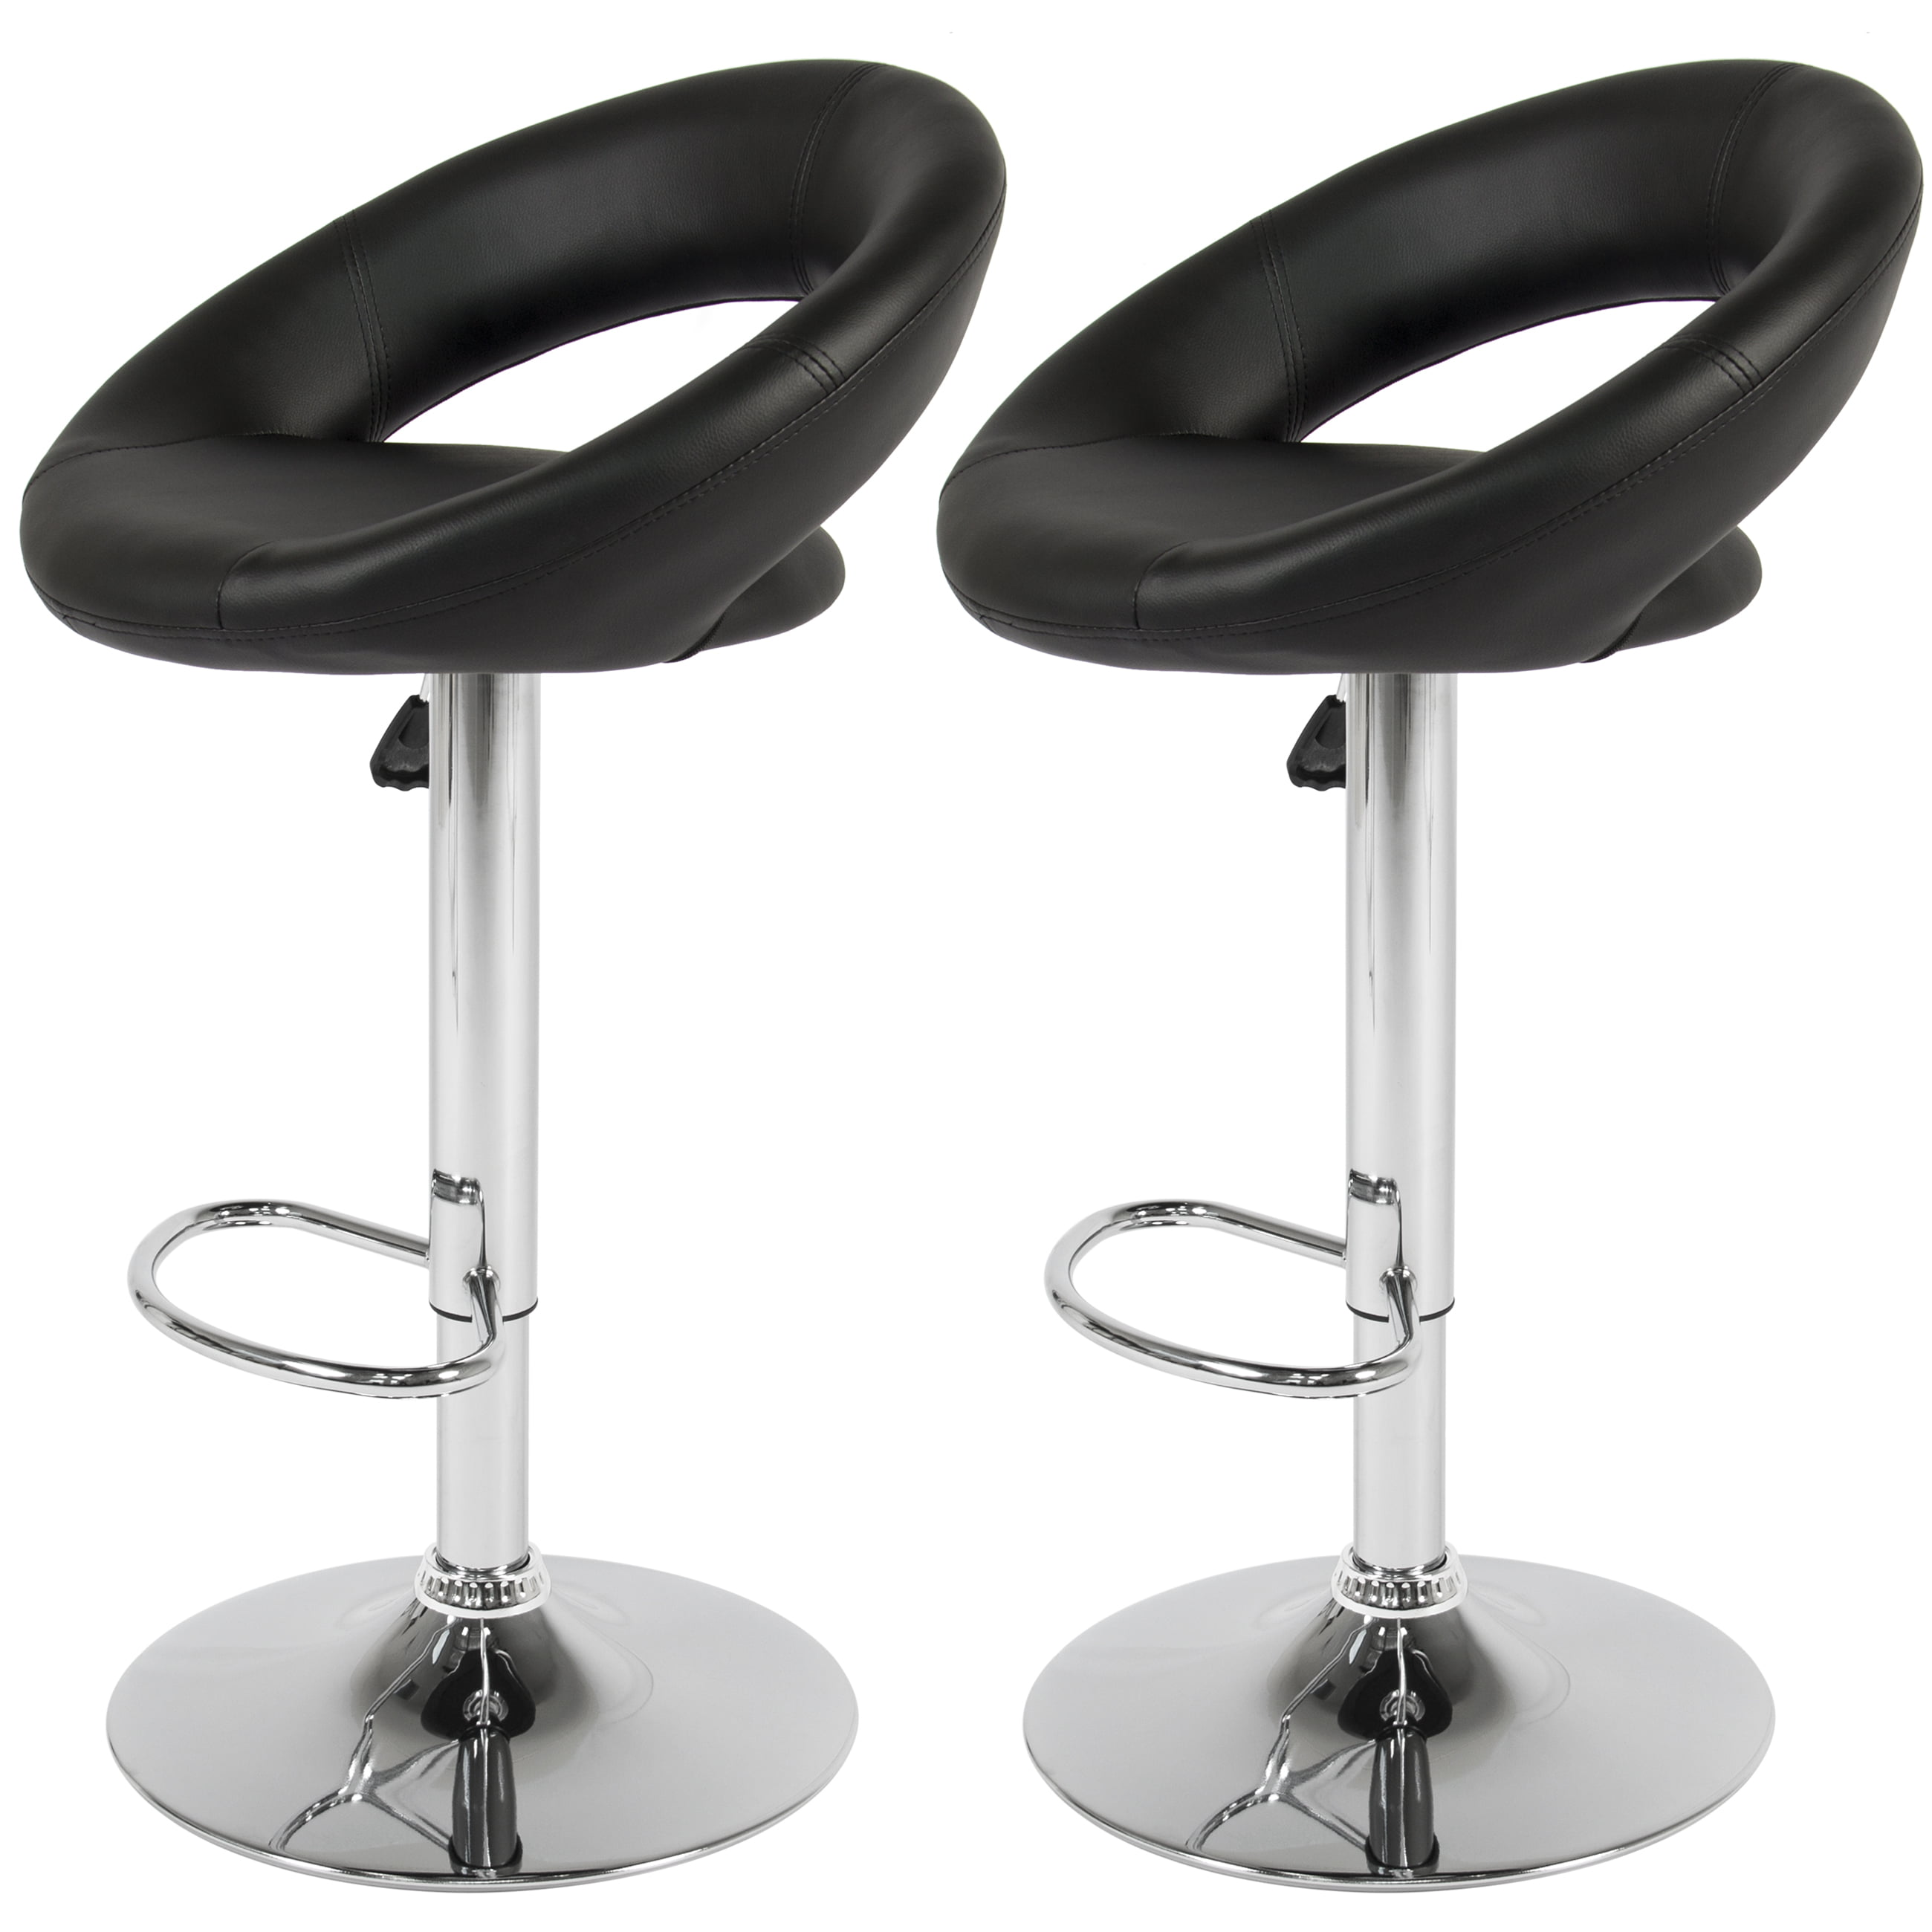 Best Choice Products Bcp Set Of 2 Pu Leather Adjule Swivel Bar Stool Hydraulic Barstool Black